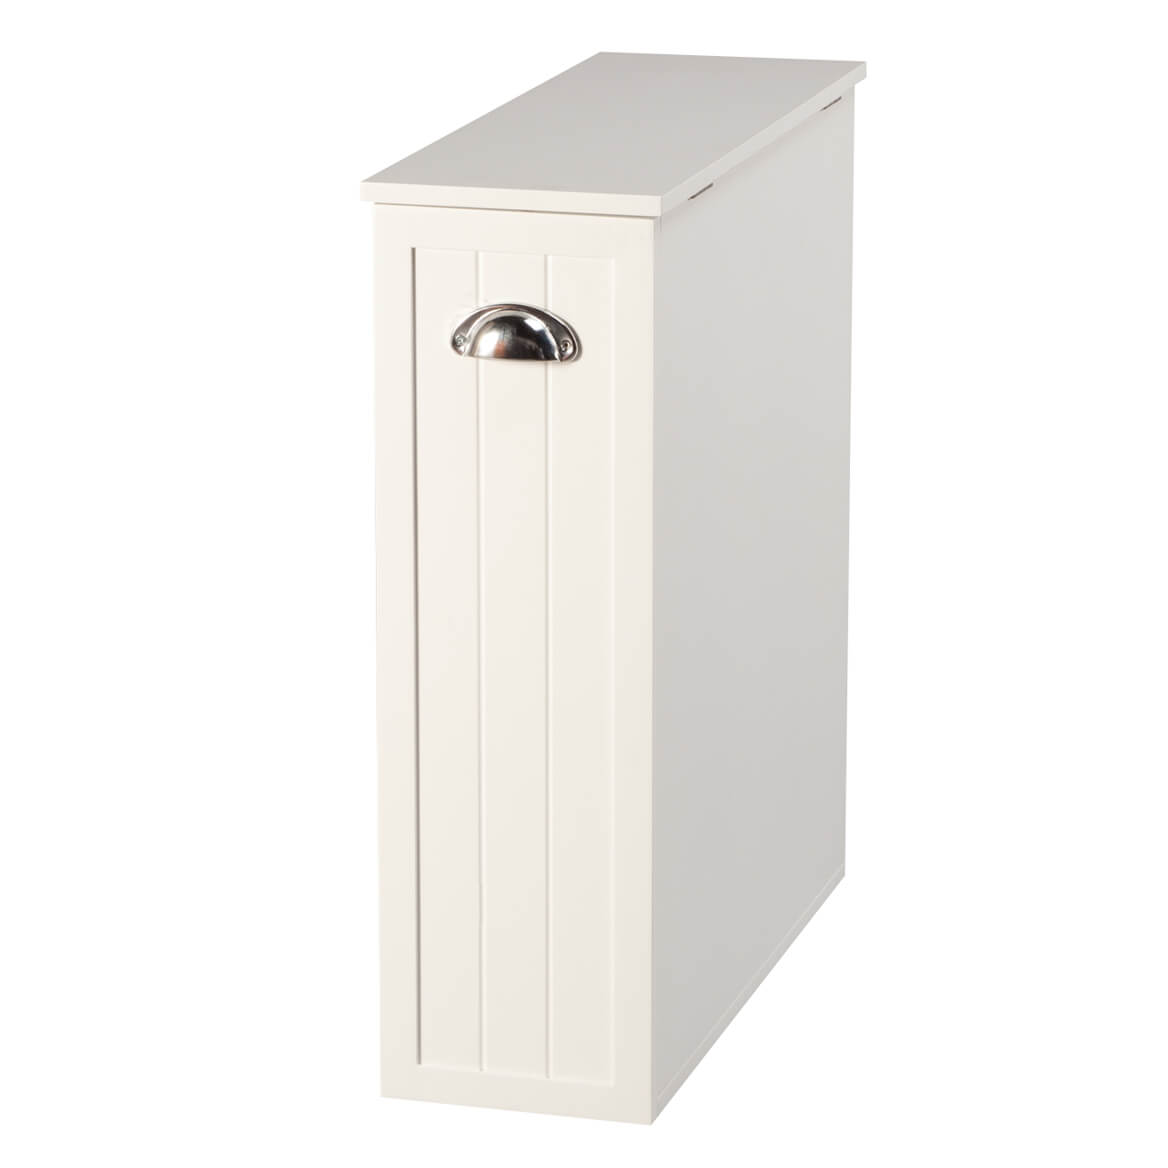 Oakridge Slim Bathroom Storage Cabinet With Slide Out Shelf Hinged